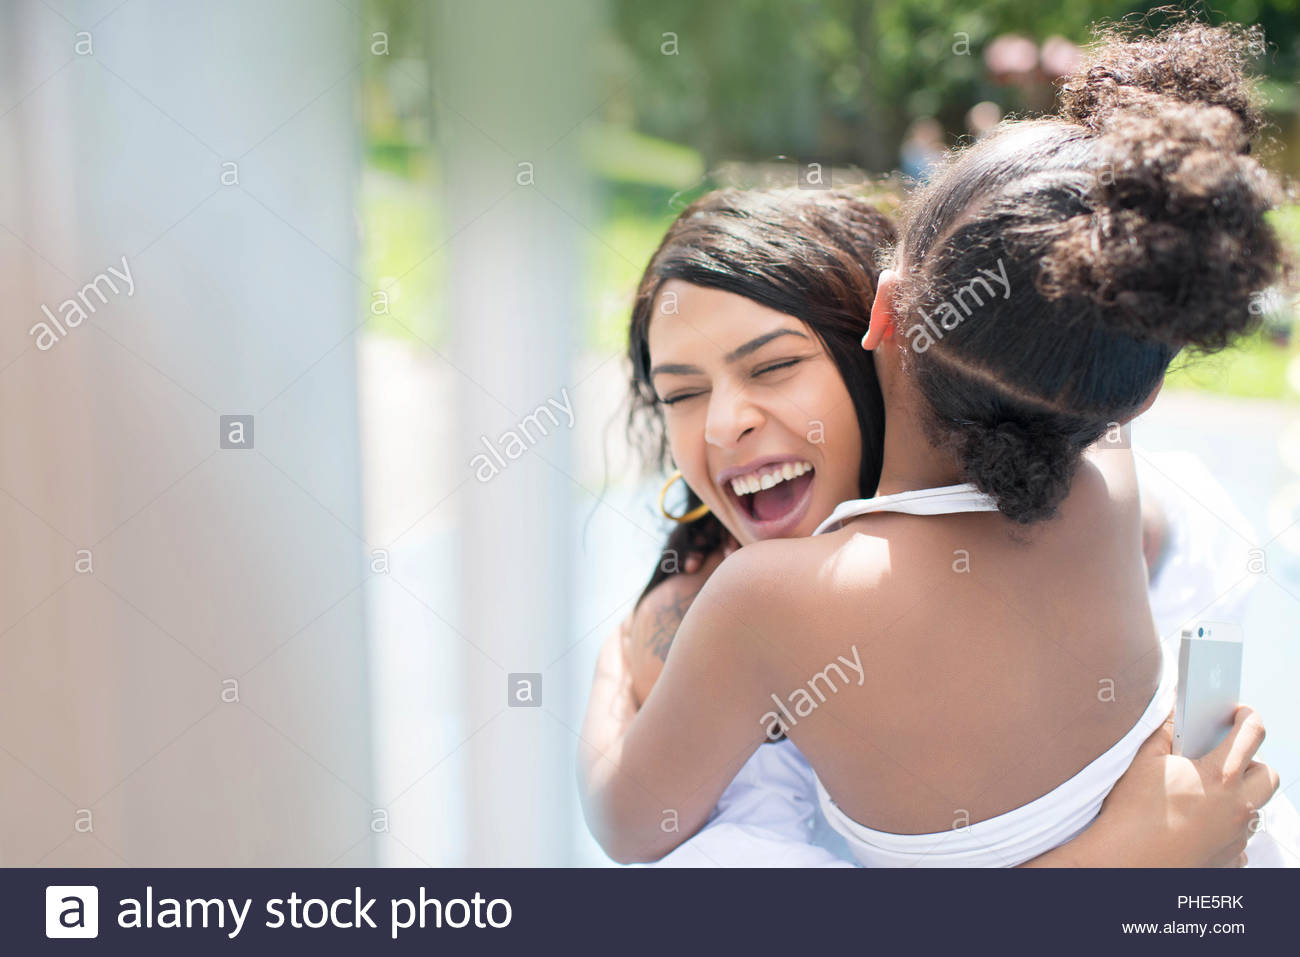 Smiling young woman hugging her daughter Photo Stock